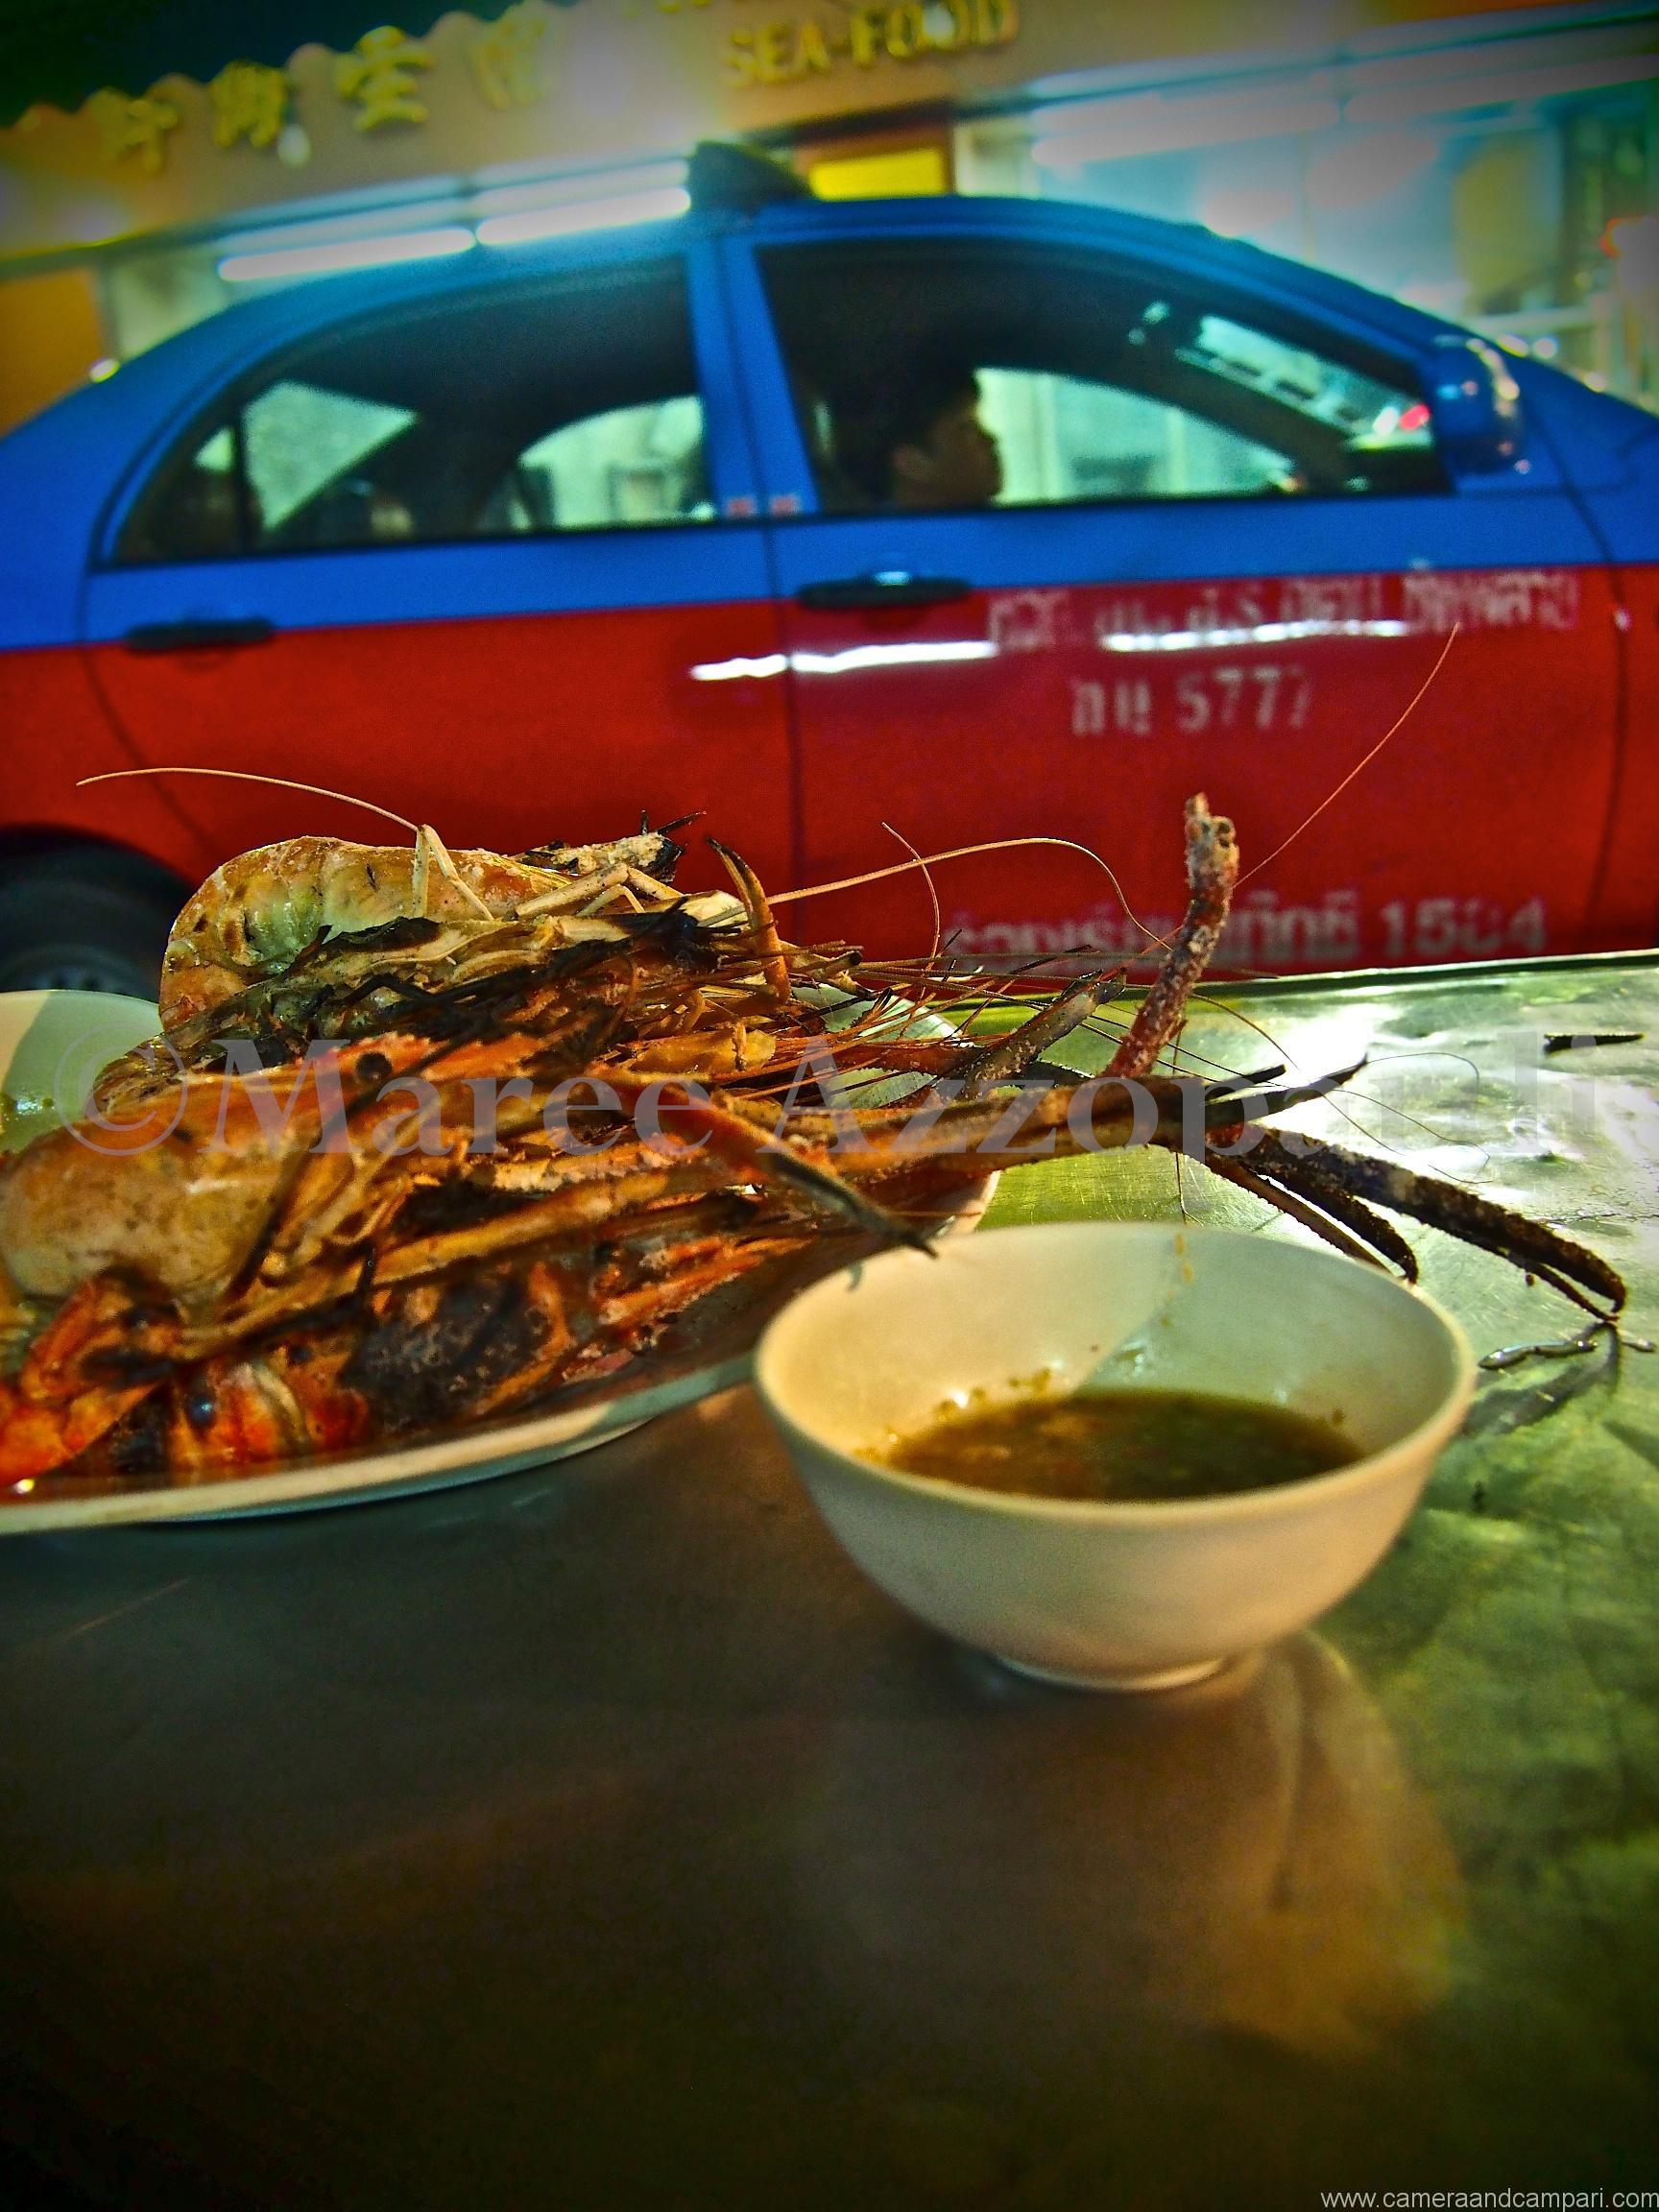 Giant river prawns with spicy nam jim dipping sauce in Soi Texas, Chinatown Bangkok